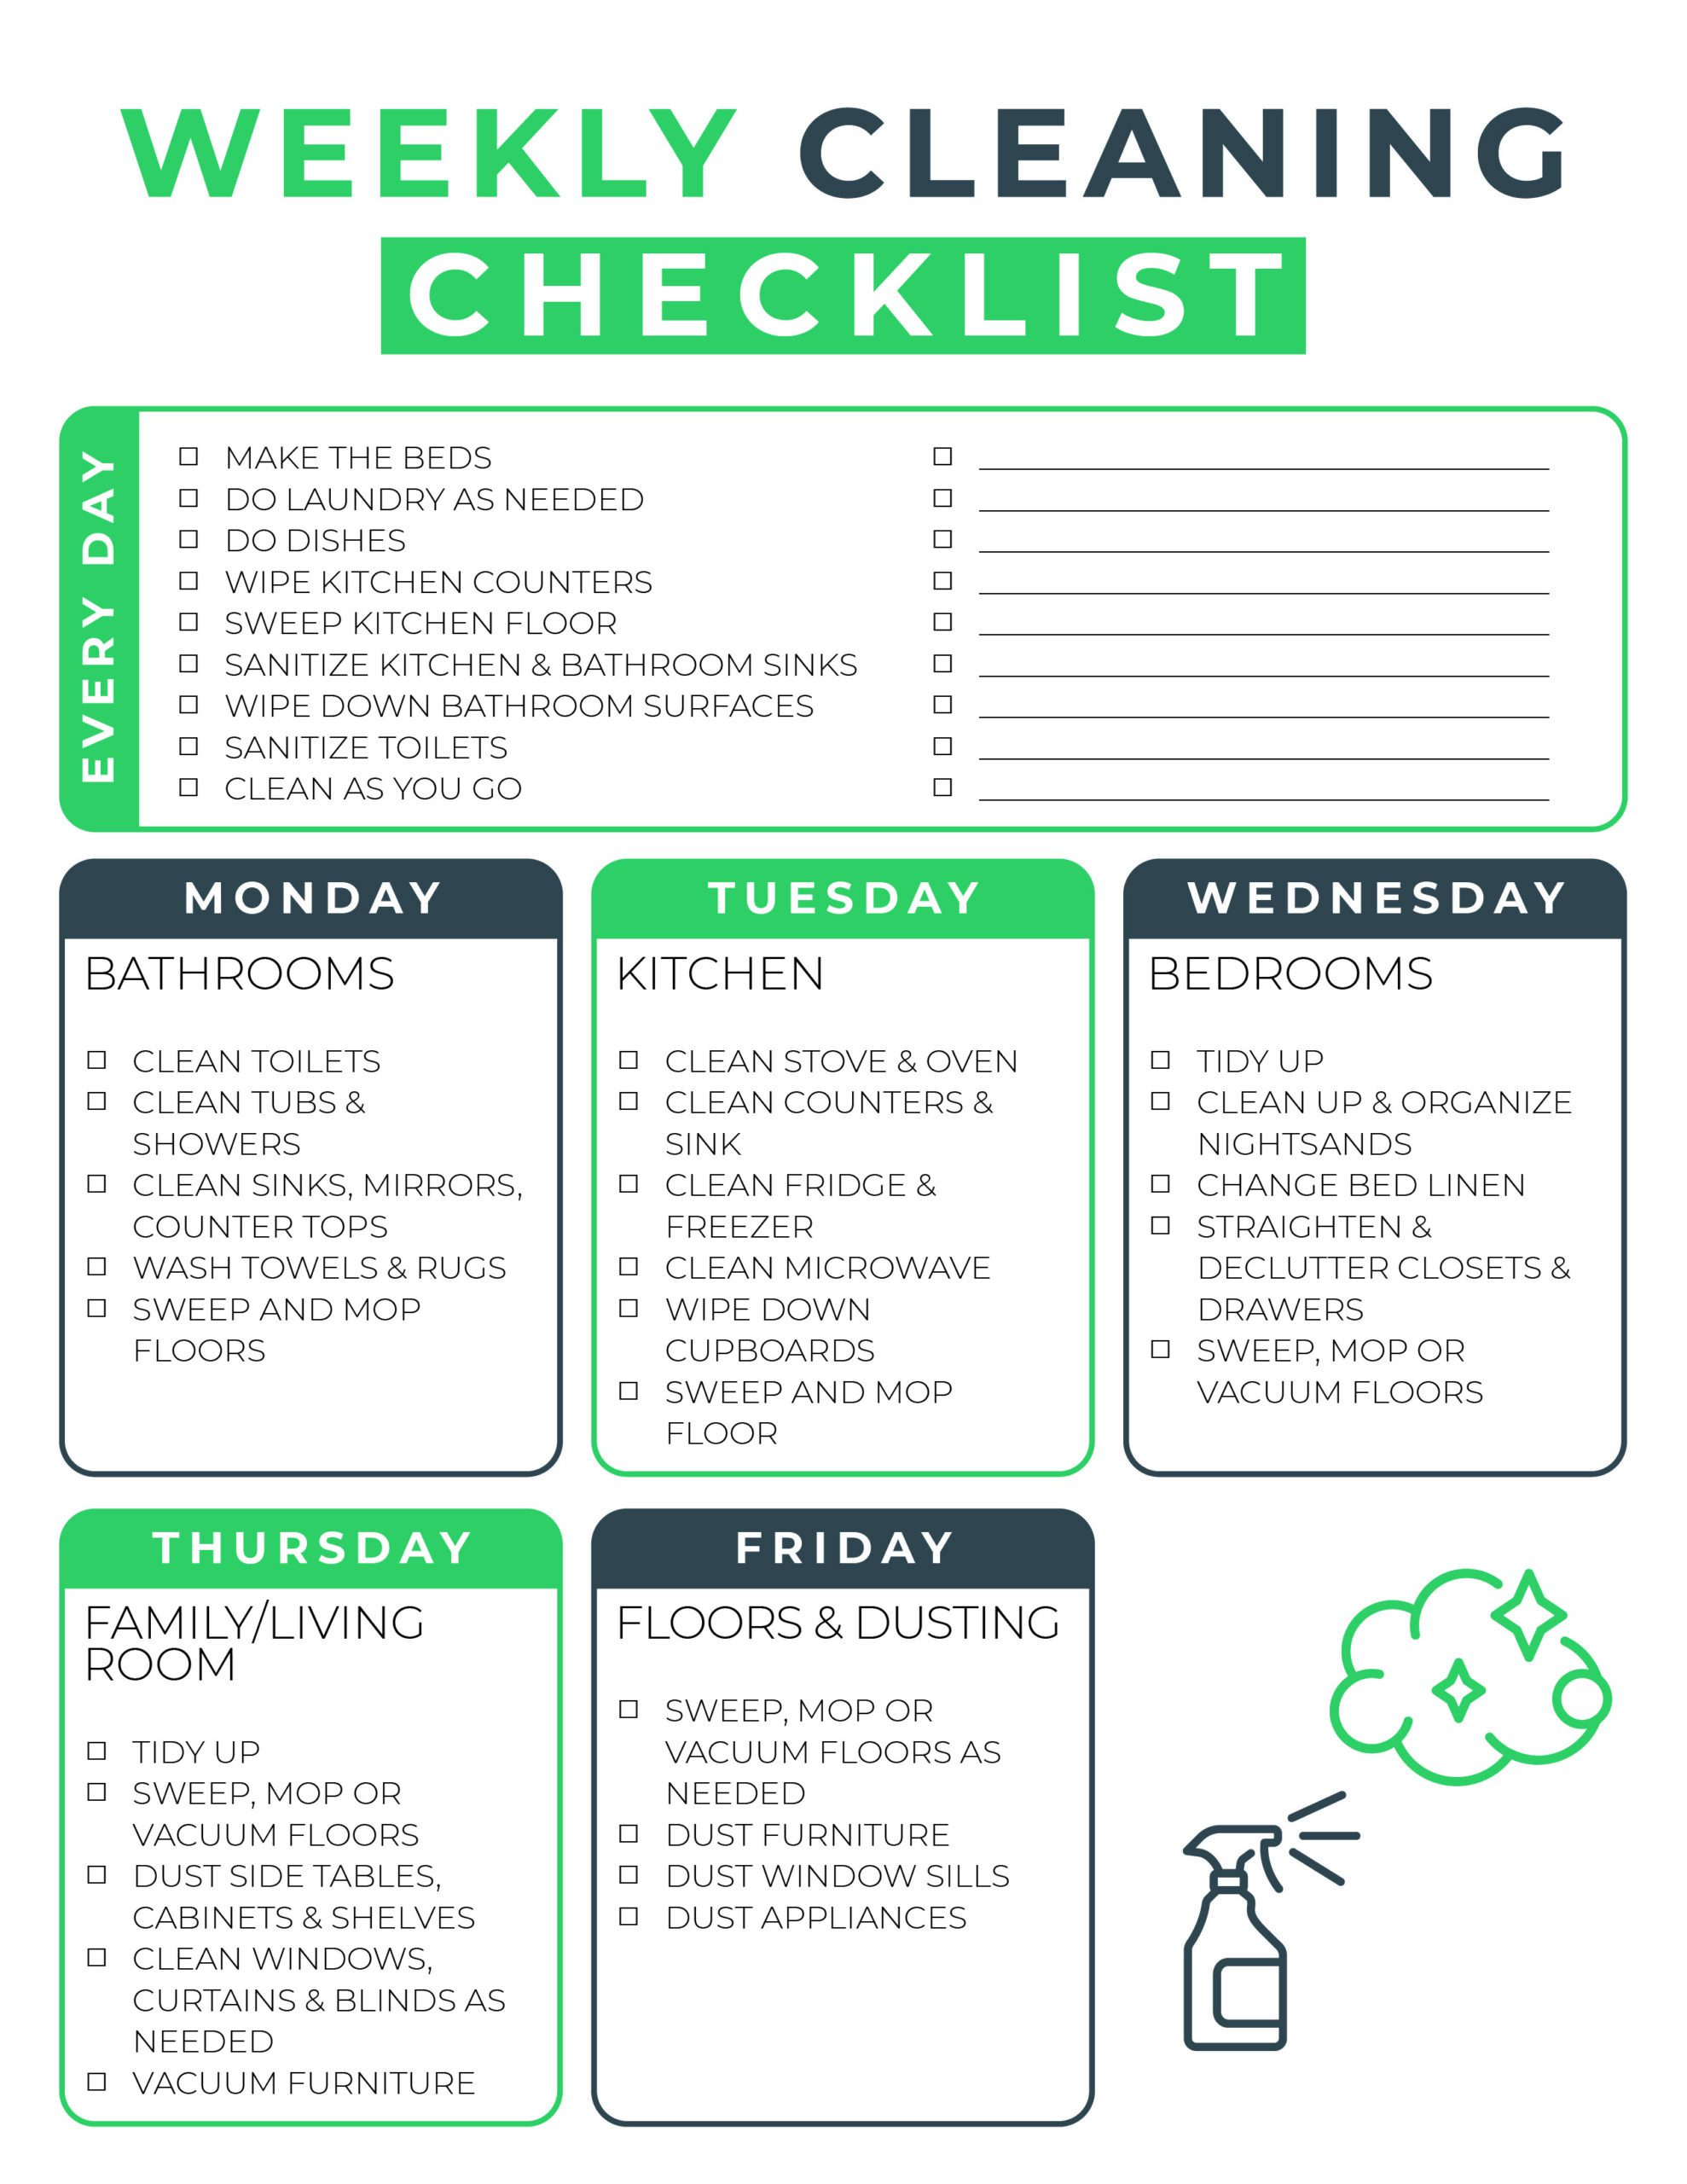 Basic Housecleaning Checklist